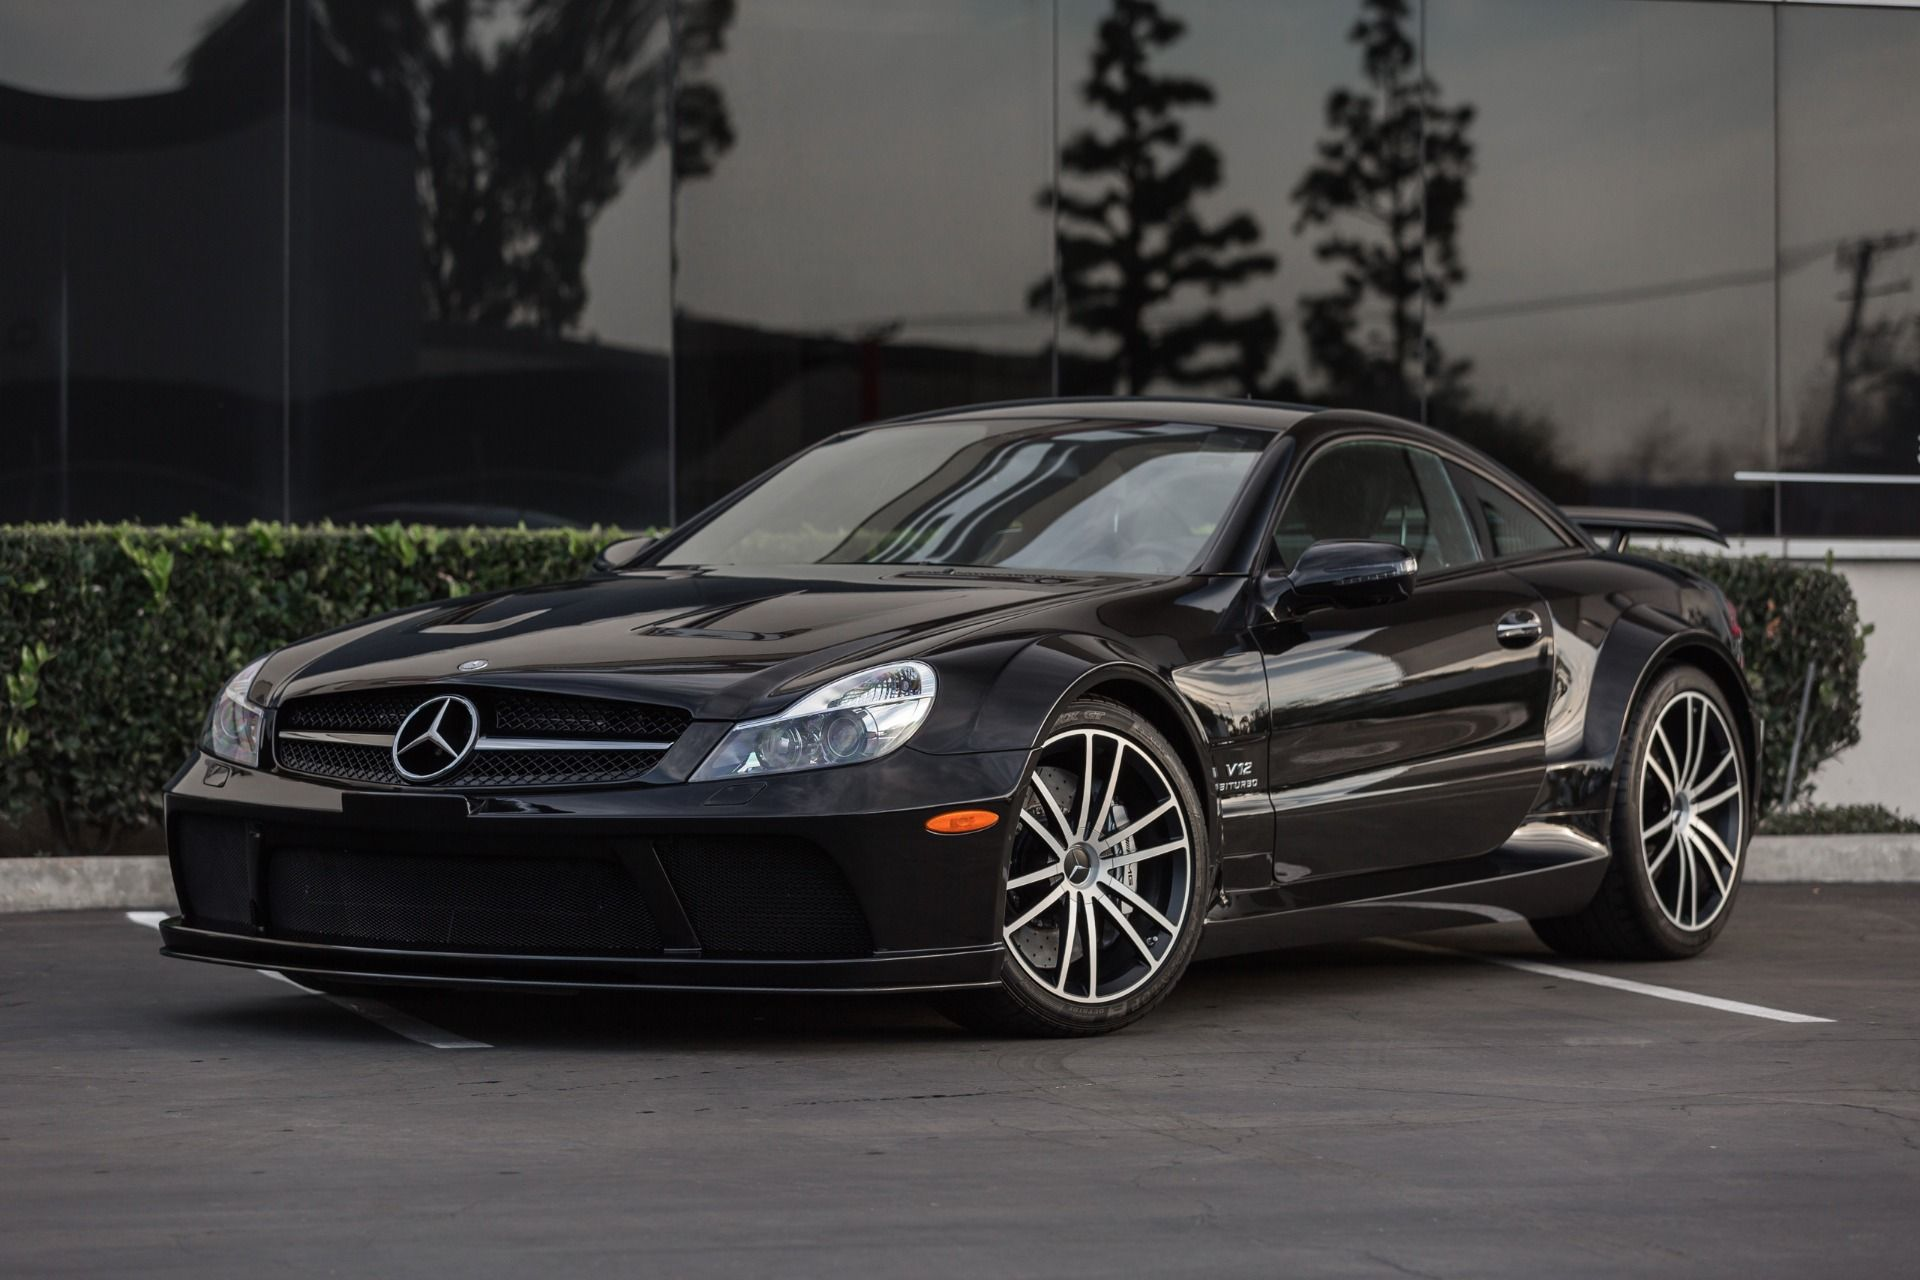 Used 2009 mercedes benz sl class sl65 amg black series costa mesa